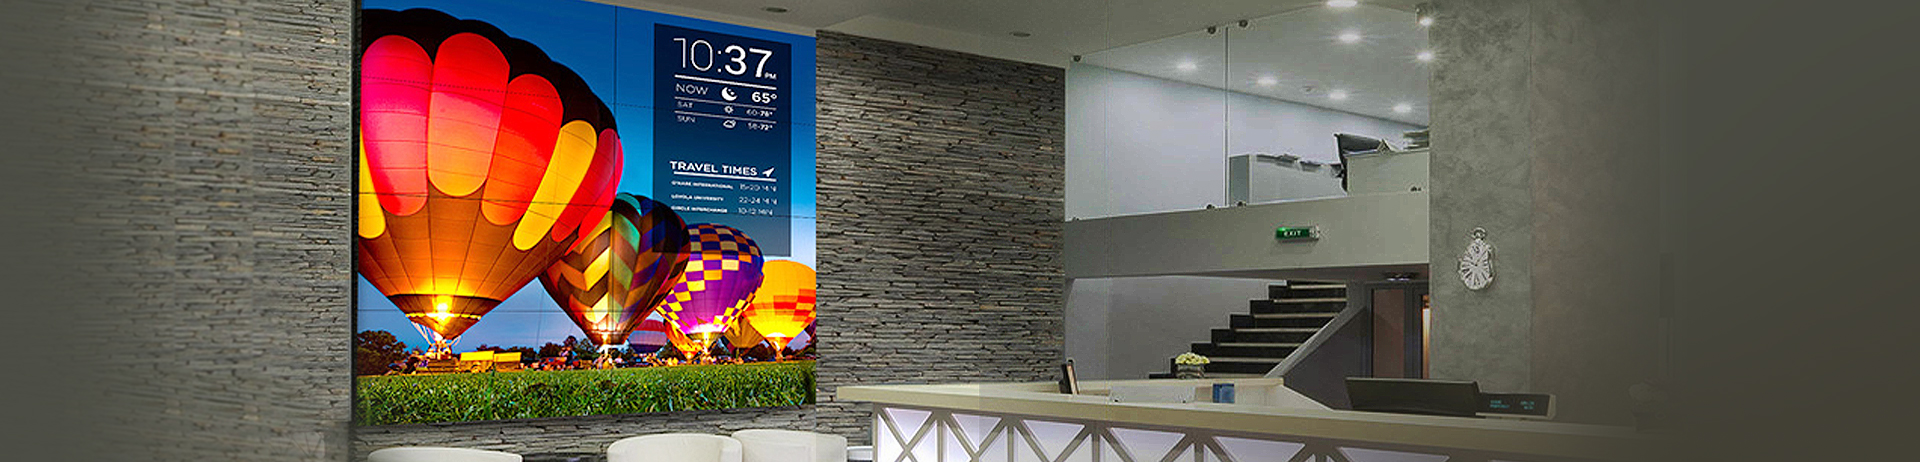 Introducing the Industry's Narrowest-Bezel Video Wall Display